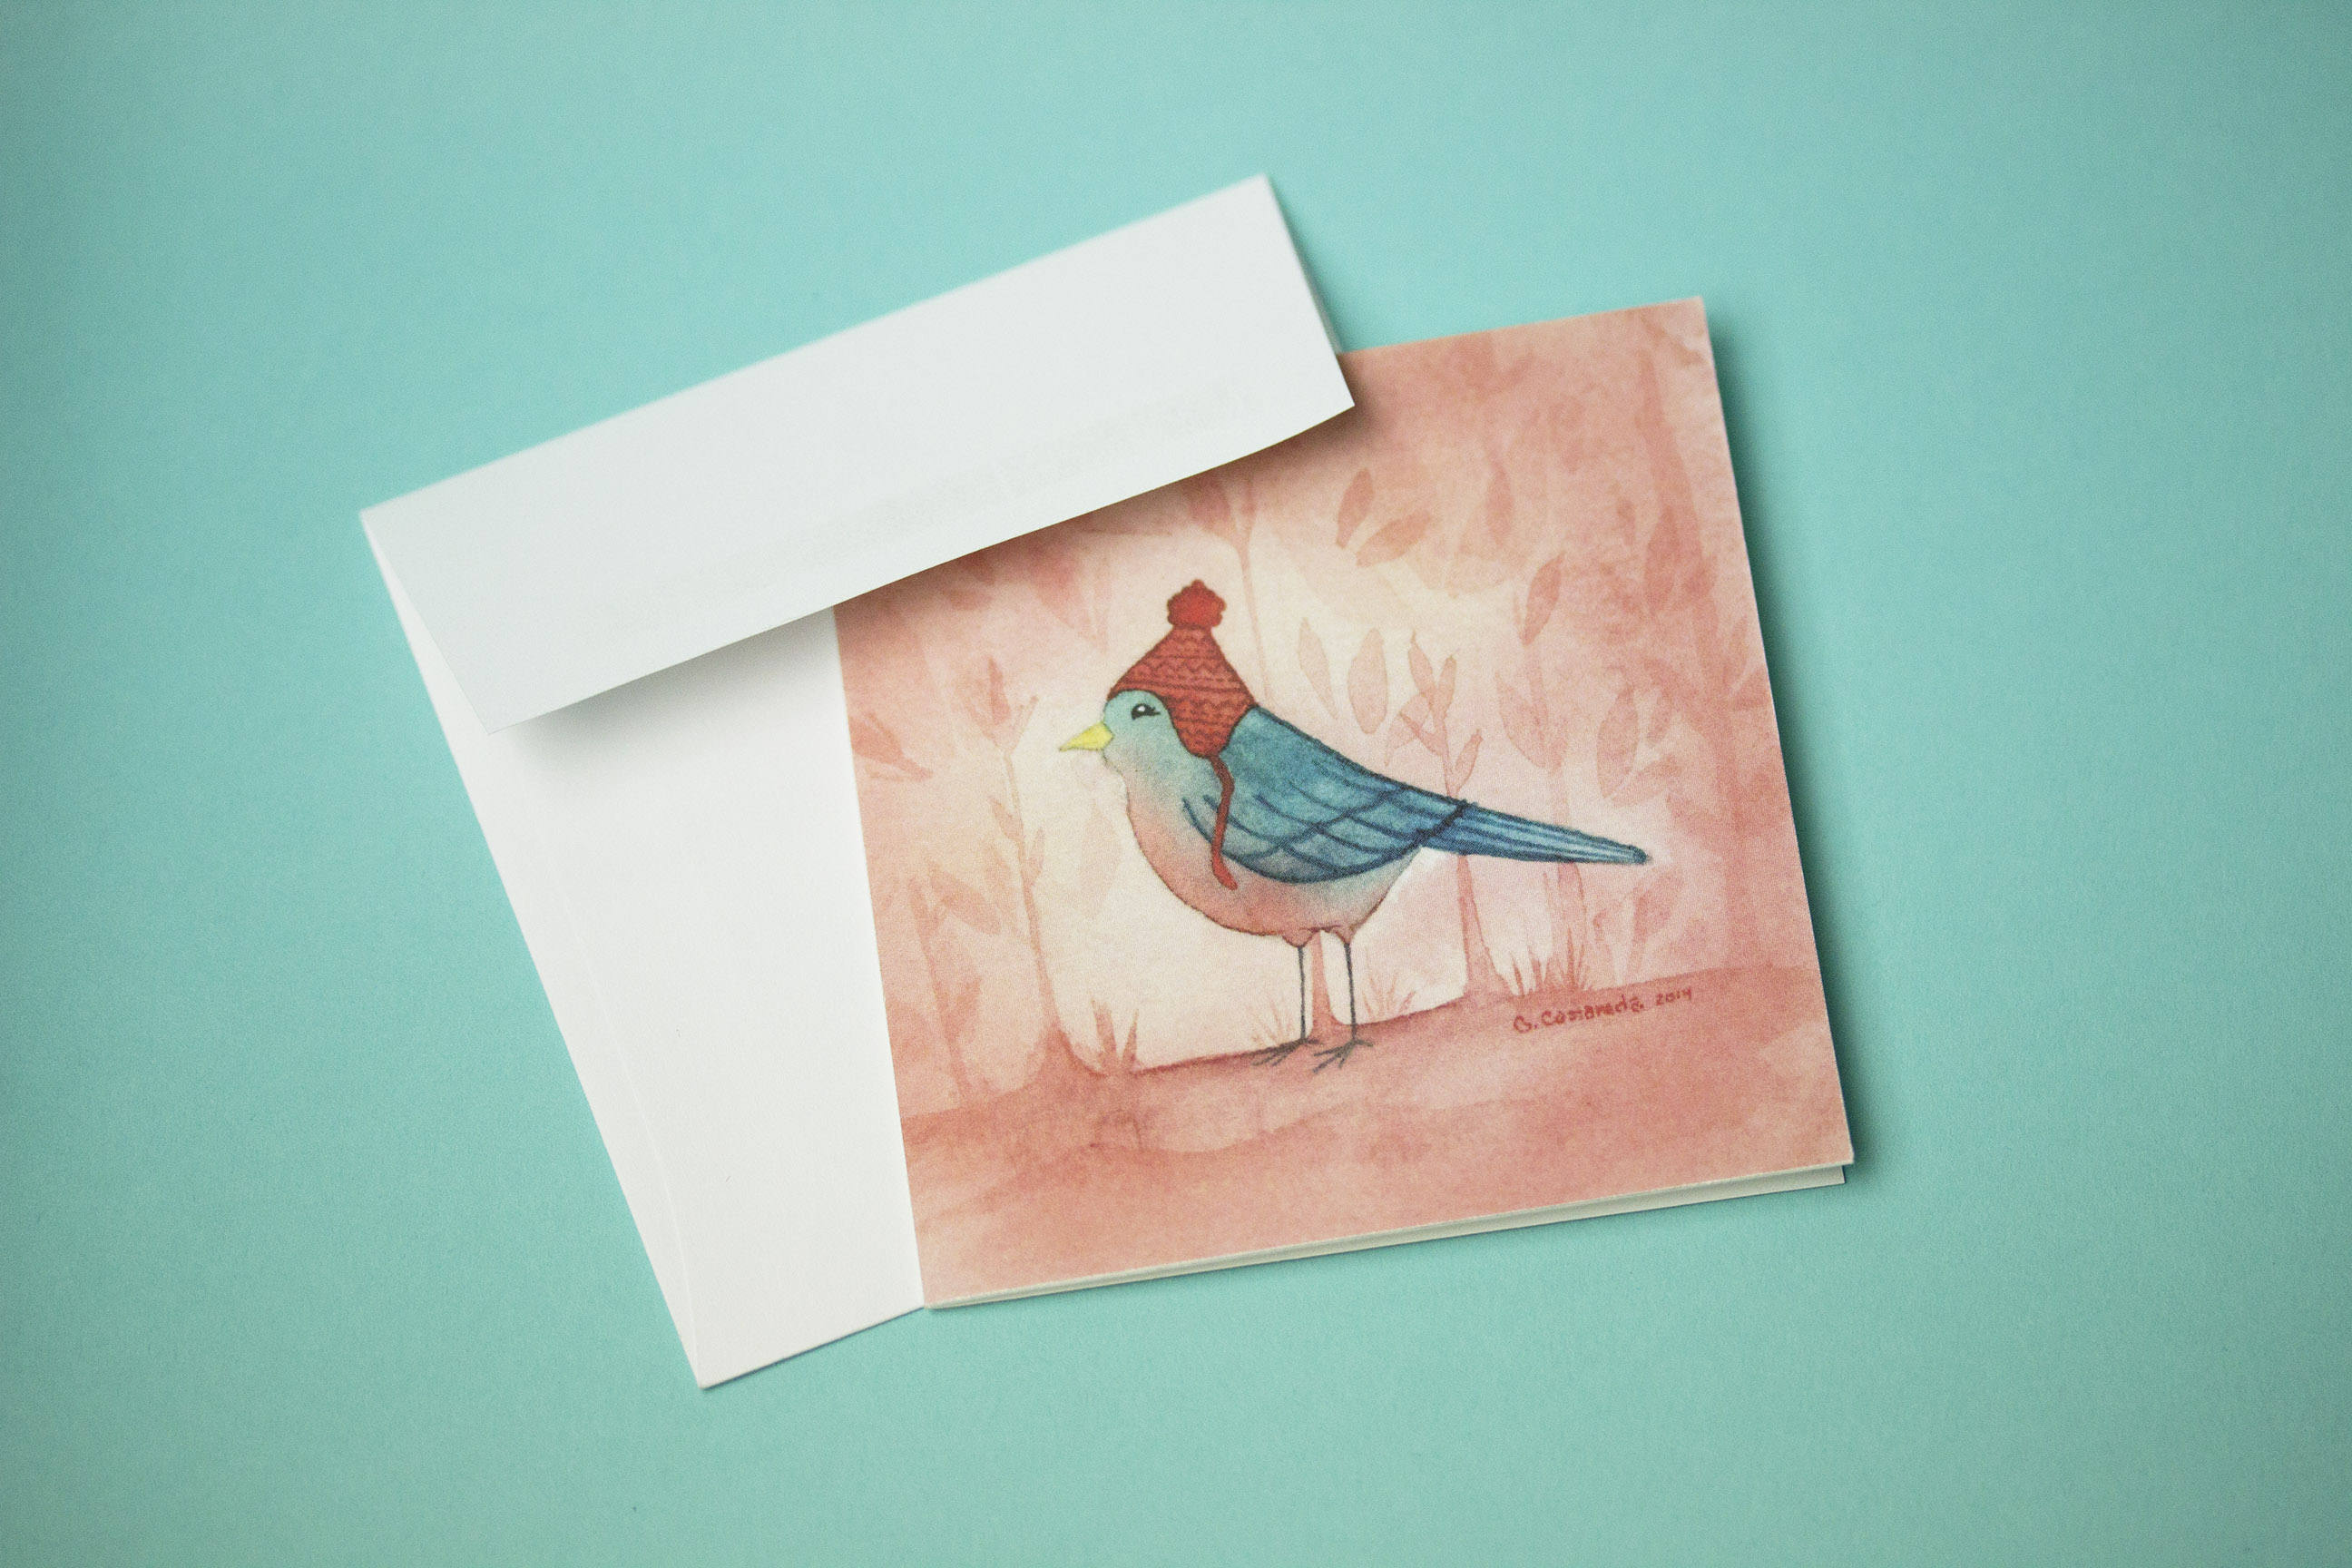 Bird greeting card mini greeting card thank you card birthday bird greeting card mini greeting card thank you card birthday card bookmarktalkfo Images